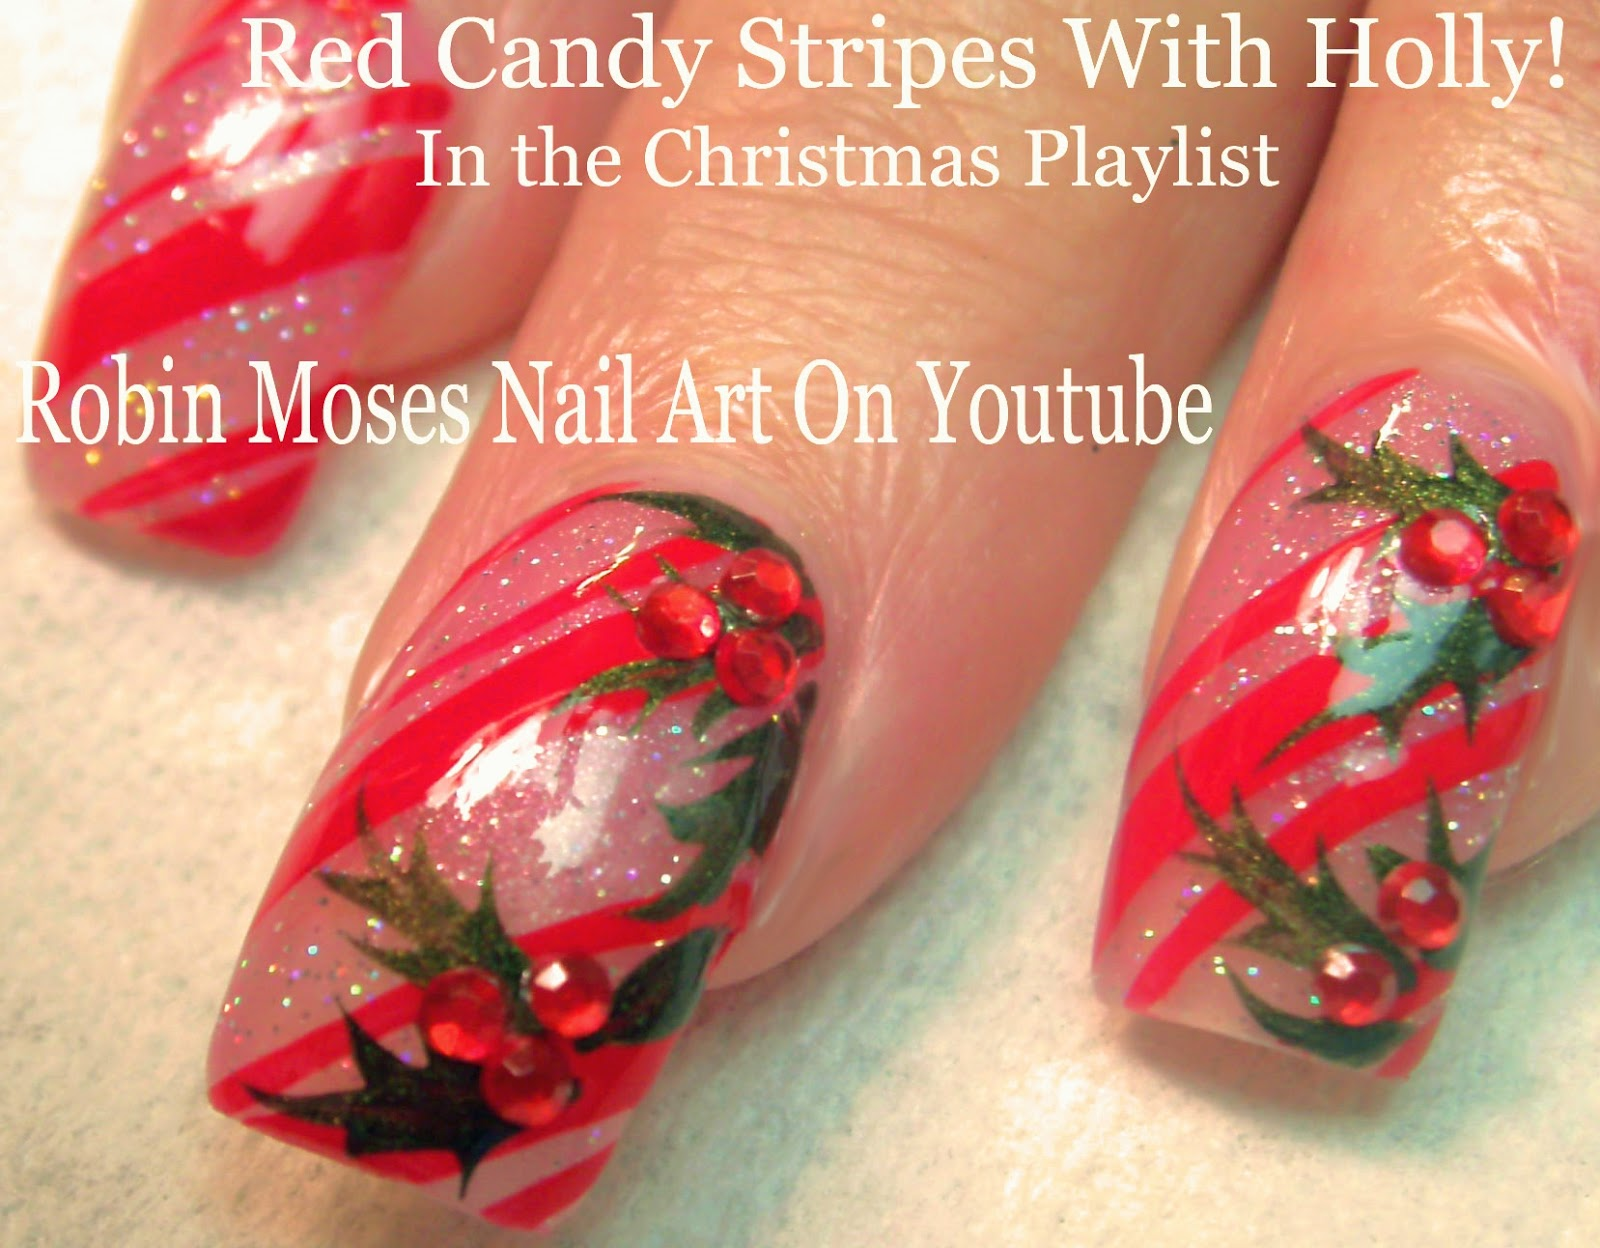 Robin moses nail art yes christmas candy cane stripe nail art christmas candy cane stripe nail art with holly berries that bling christmas nail art easy christmas nails christmas designs xmas nails xmas prinsesfo Image collections